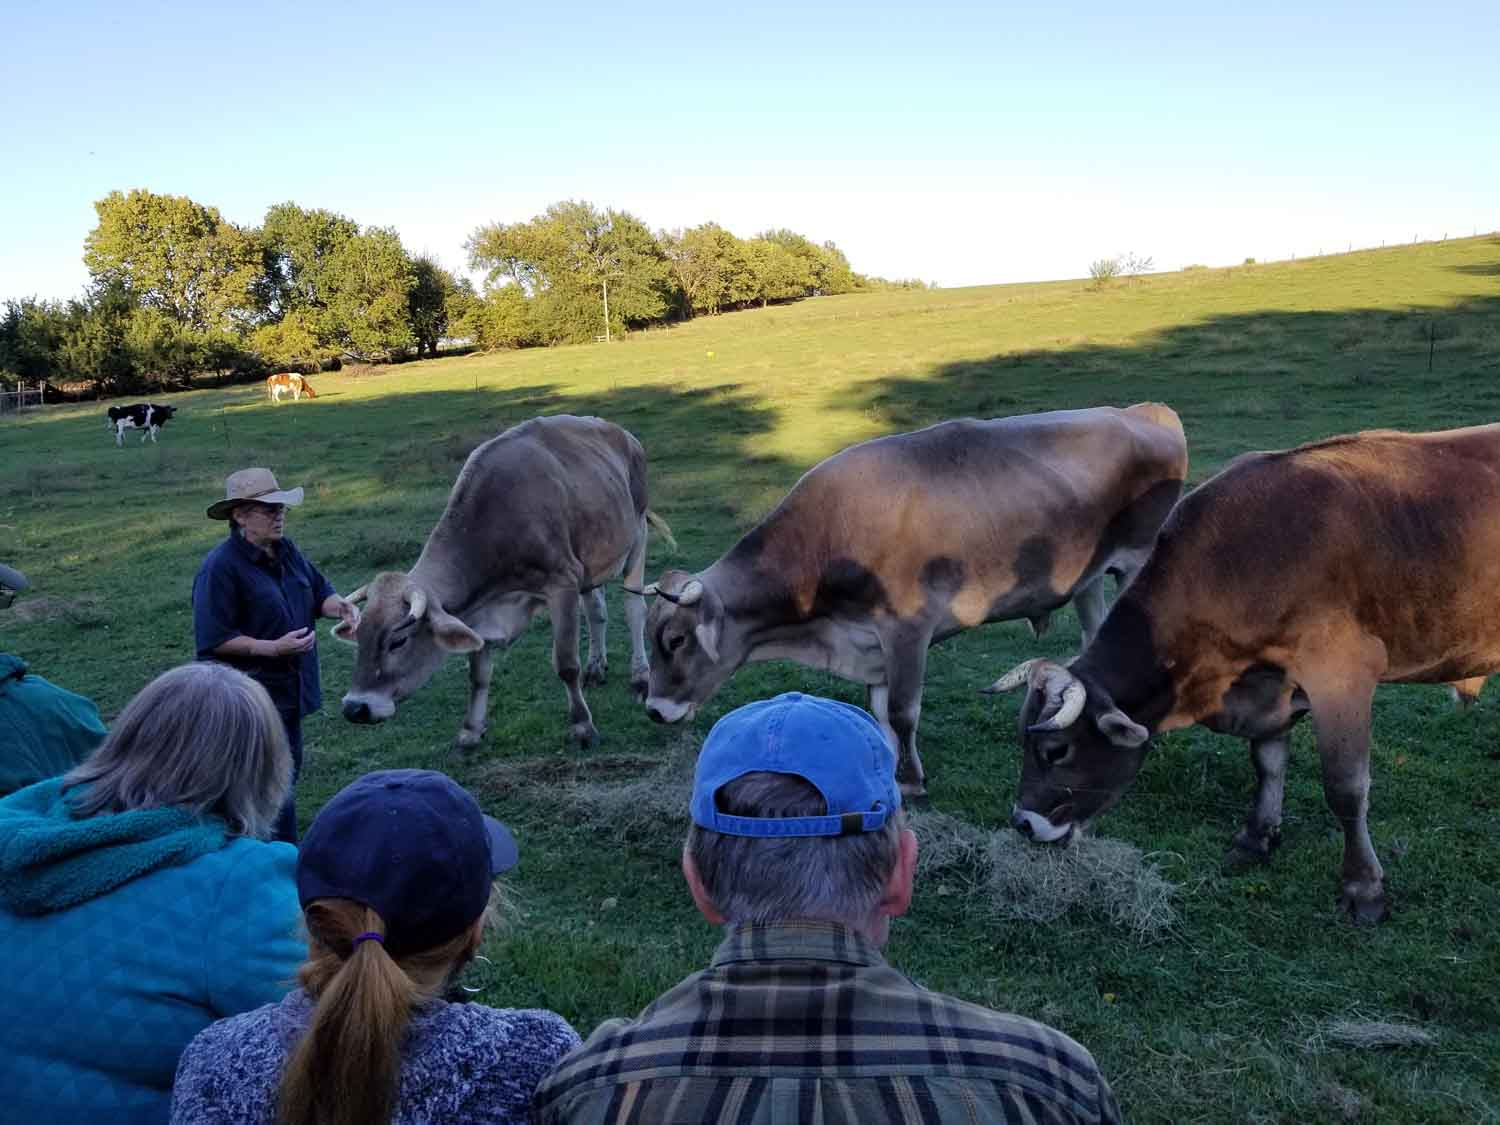 Oxen at Whistle Creek in St. Joseph, Mo. Cindy Weaver, OCTA member and outstanding speaker and educator, informs the group regarding trail history.